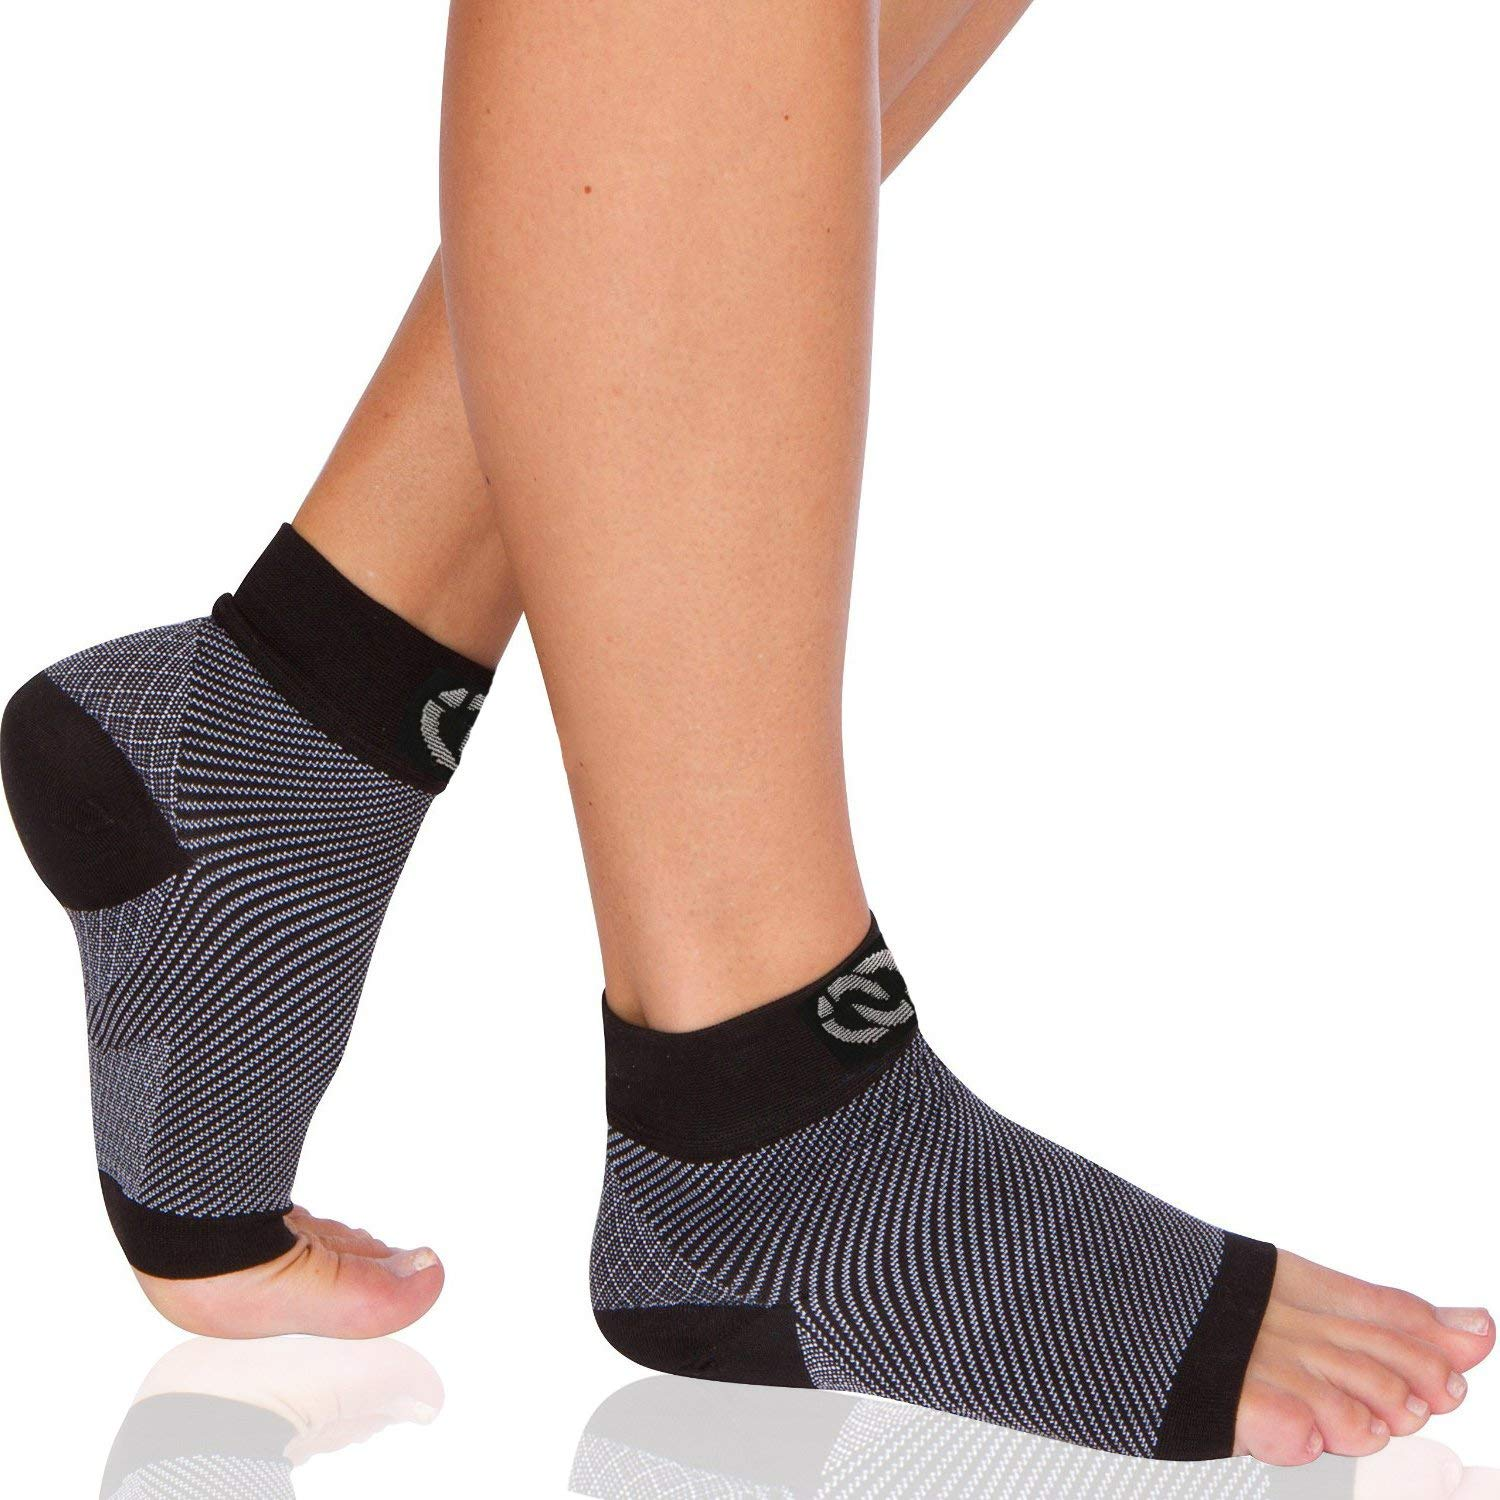 Compressions CompressionGear Recovery Fasciitis Swelling